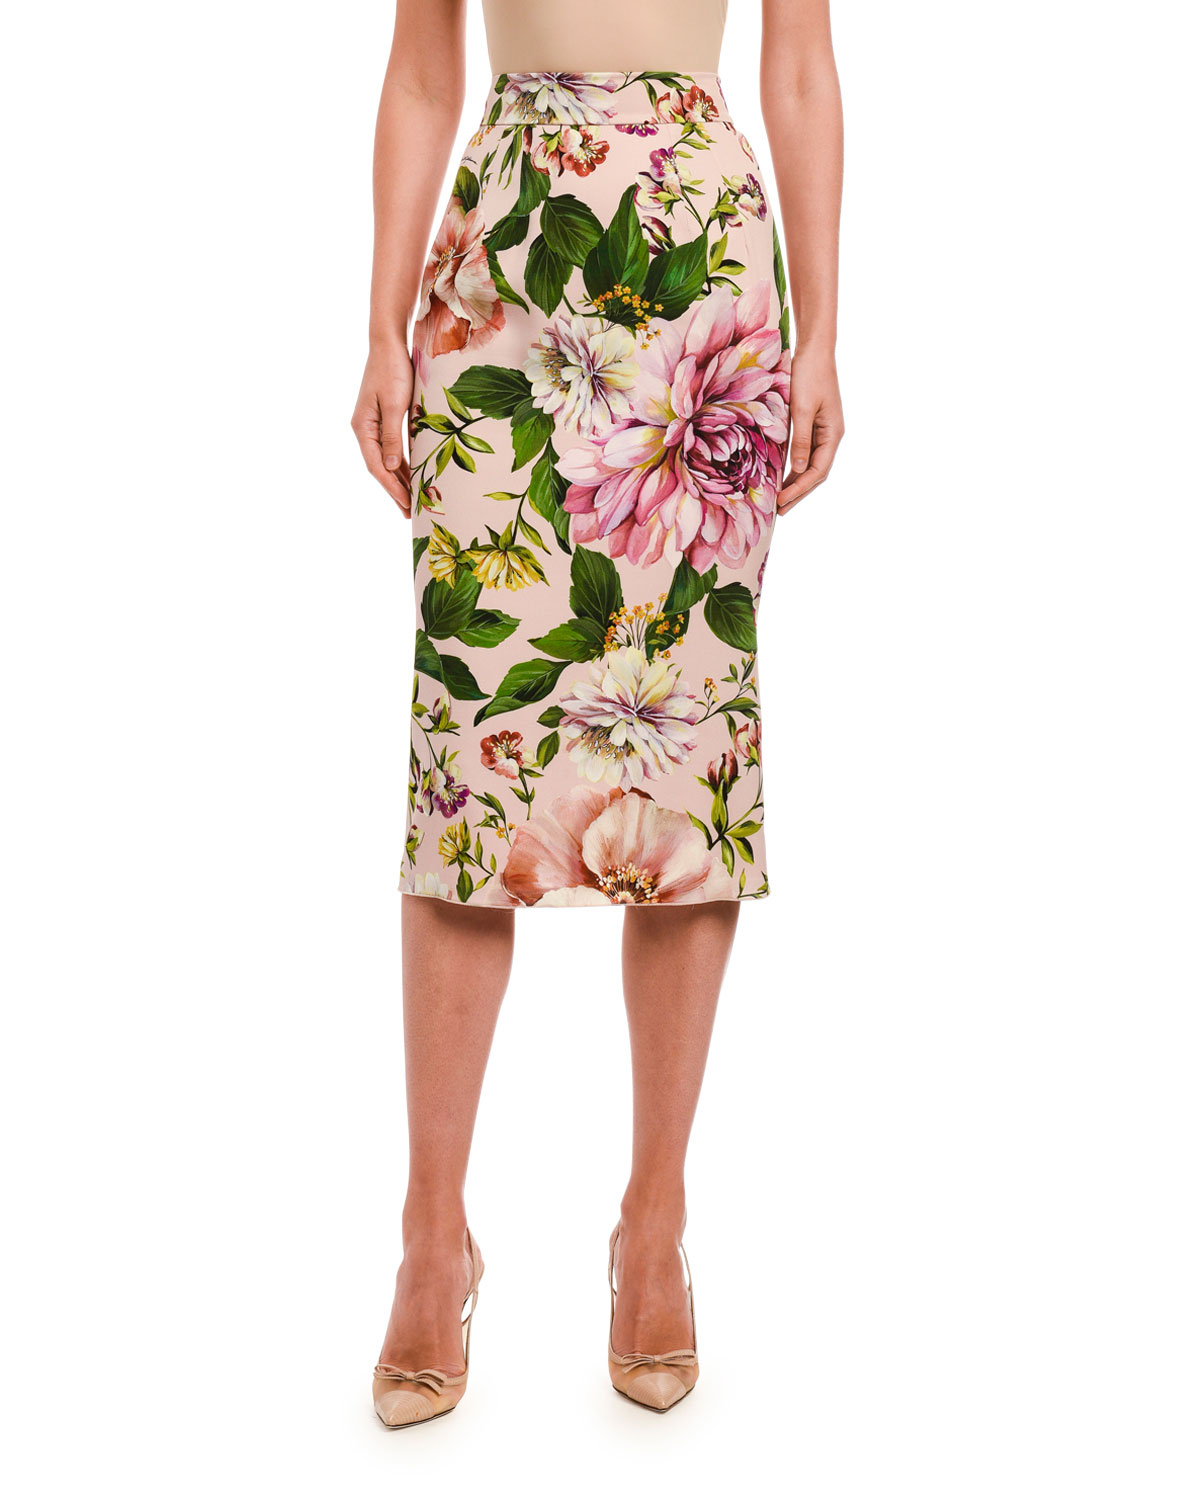 Dolce & Gabbana Floral Print Charmeuse Pencil Skirt